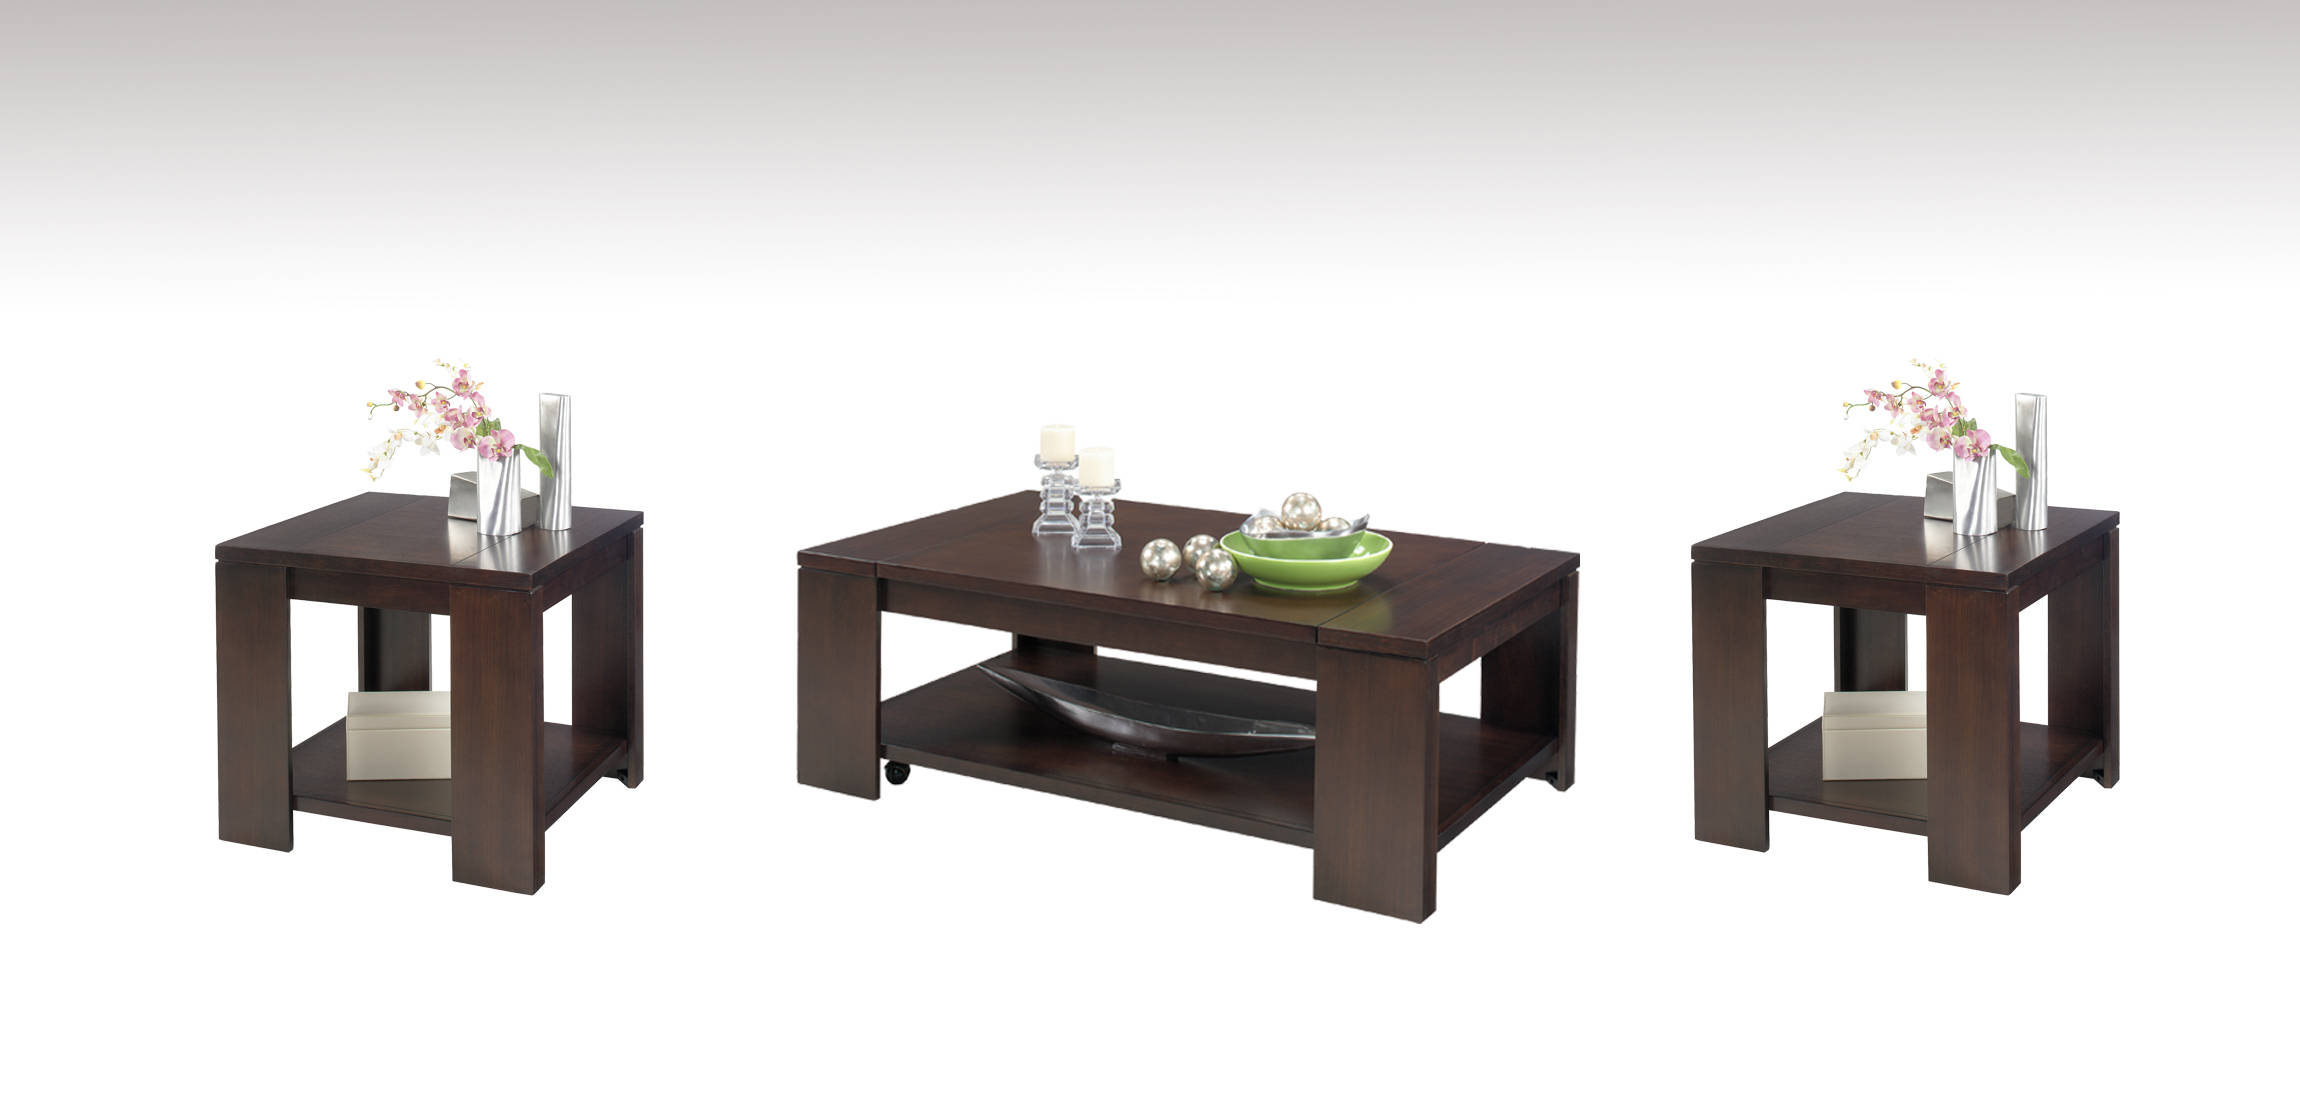 Terrific Progressive Furniture Waverly Lift Top 3Pc Coffee Table Set Pabps2019 Chair Design Images Pabps2019Com